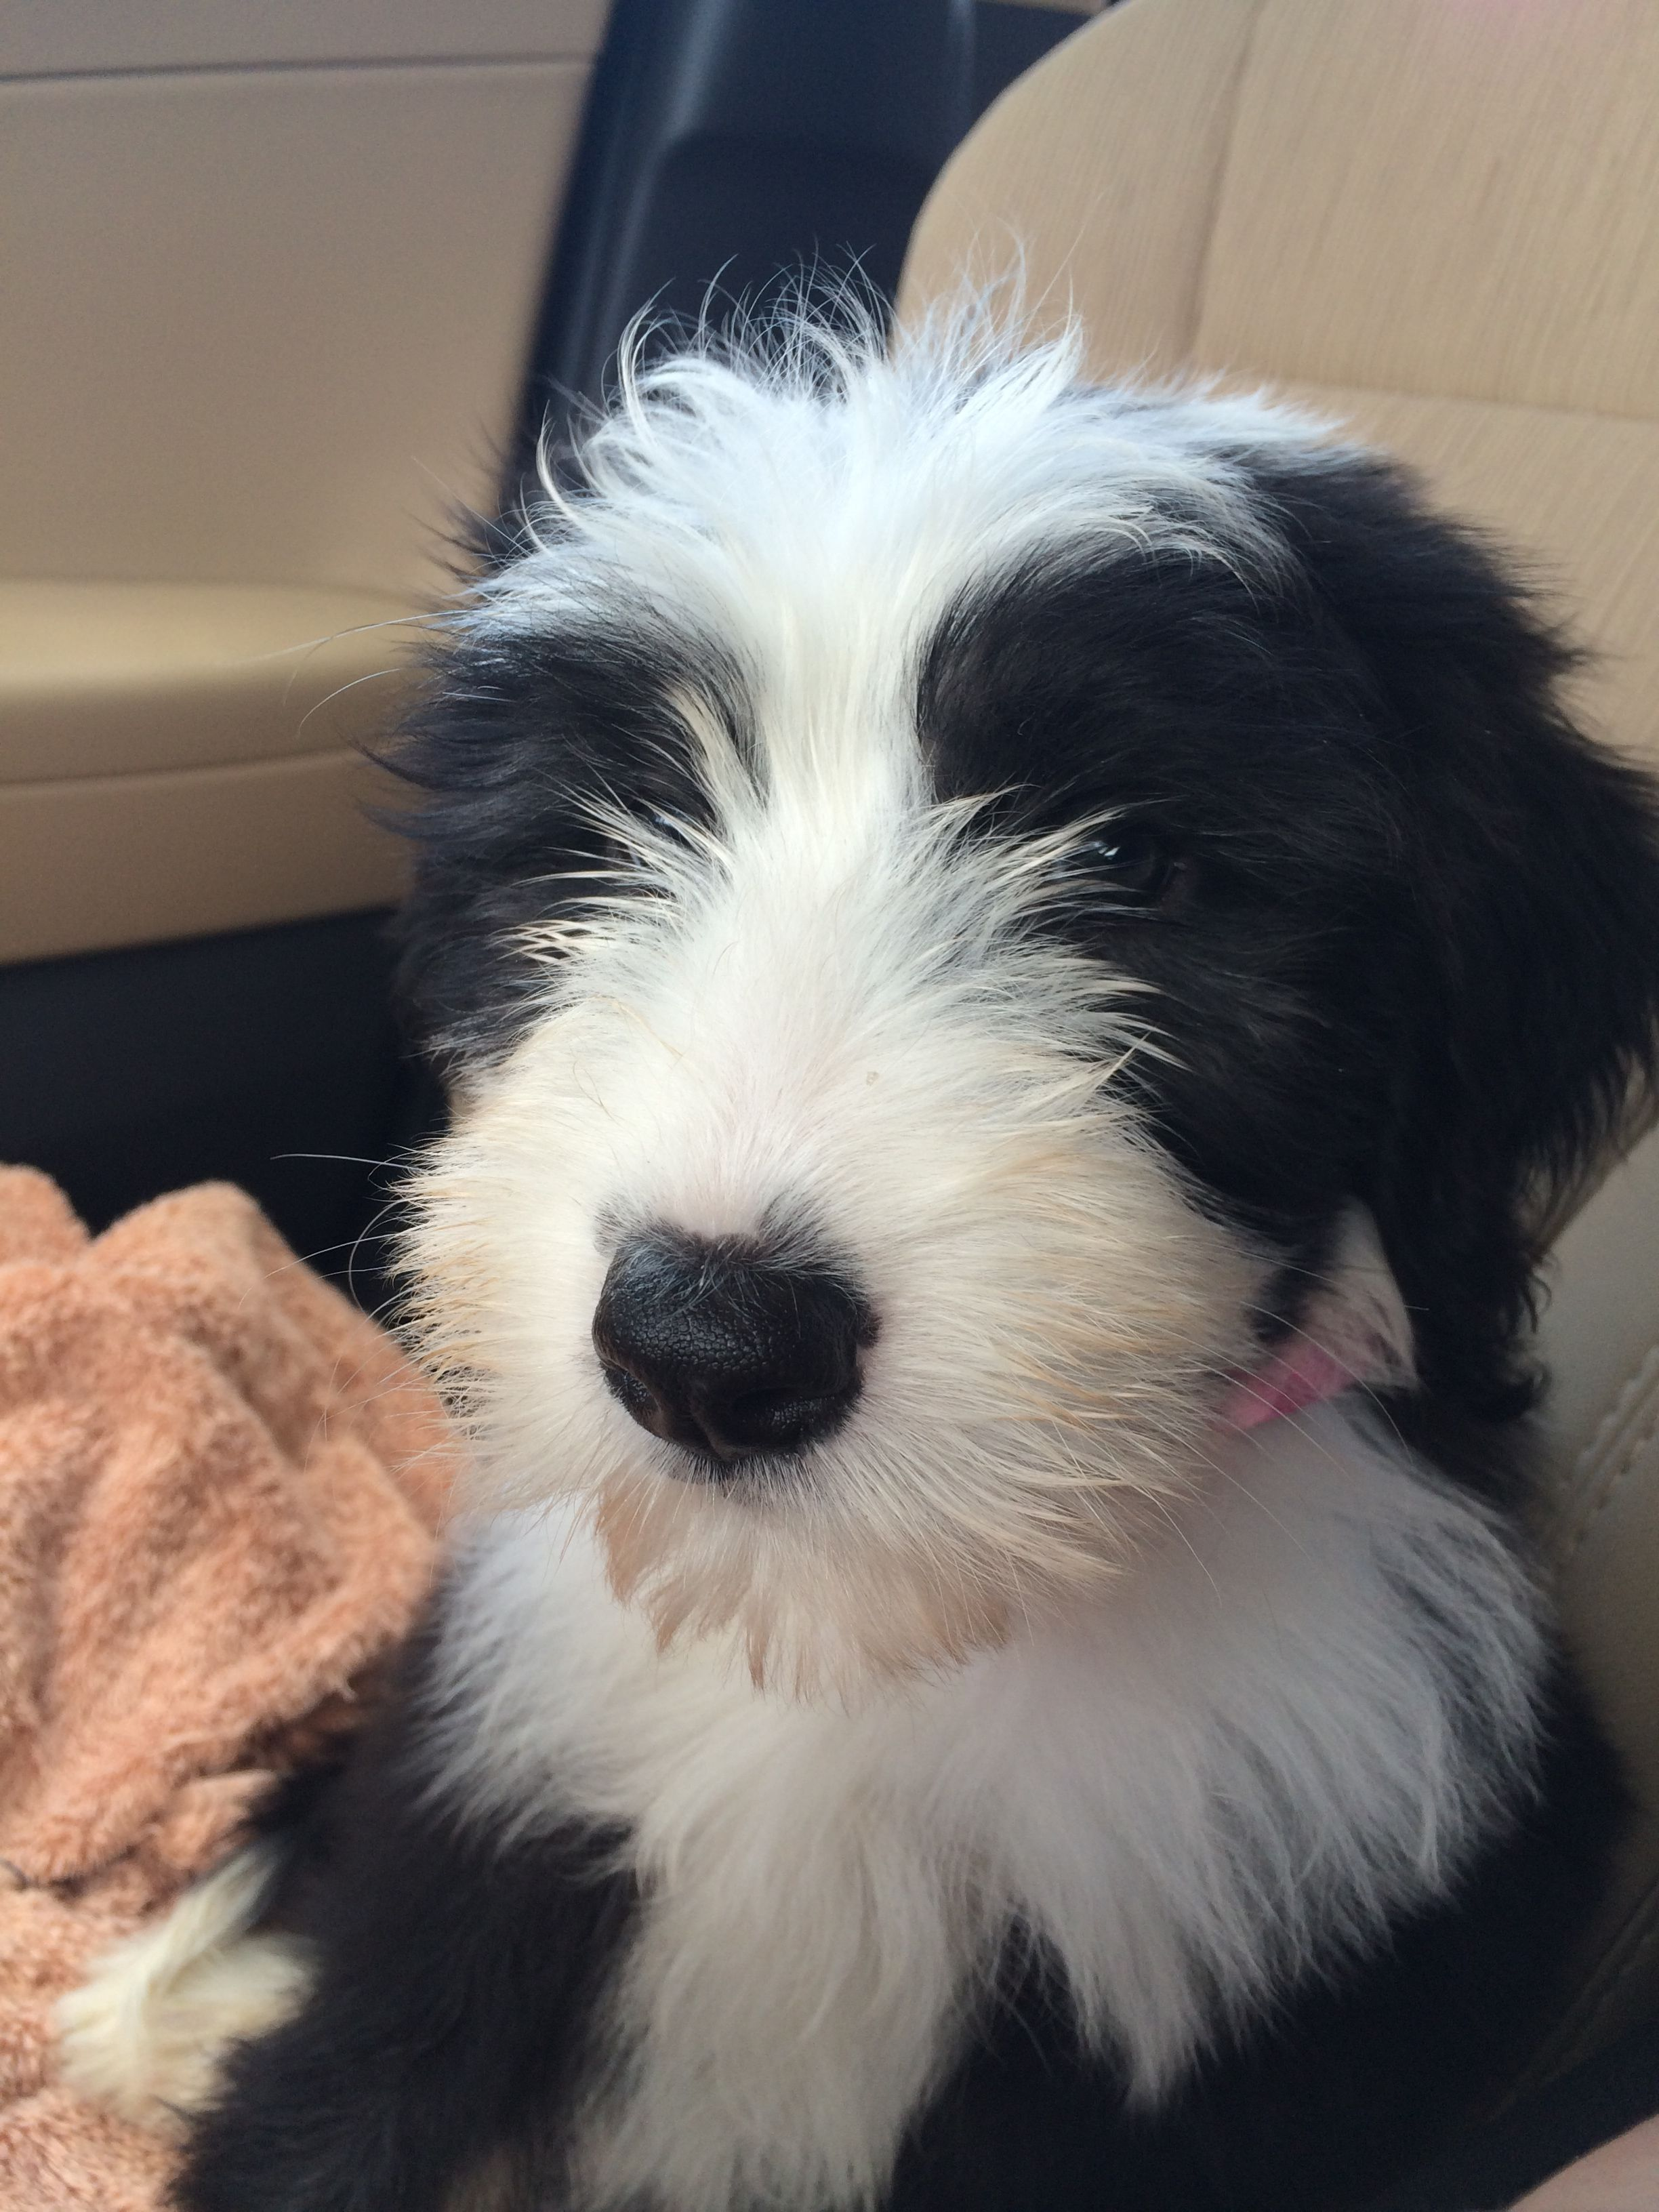 Meet Olive She Is 10 Weeks Old And Is An Old English Sheepdog Puppy She Is One Of The Calmes Old English Sheepdog Puppy Old English Sheepdog English Sheepdog